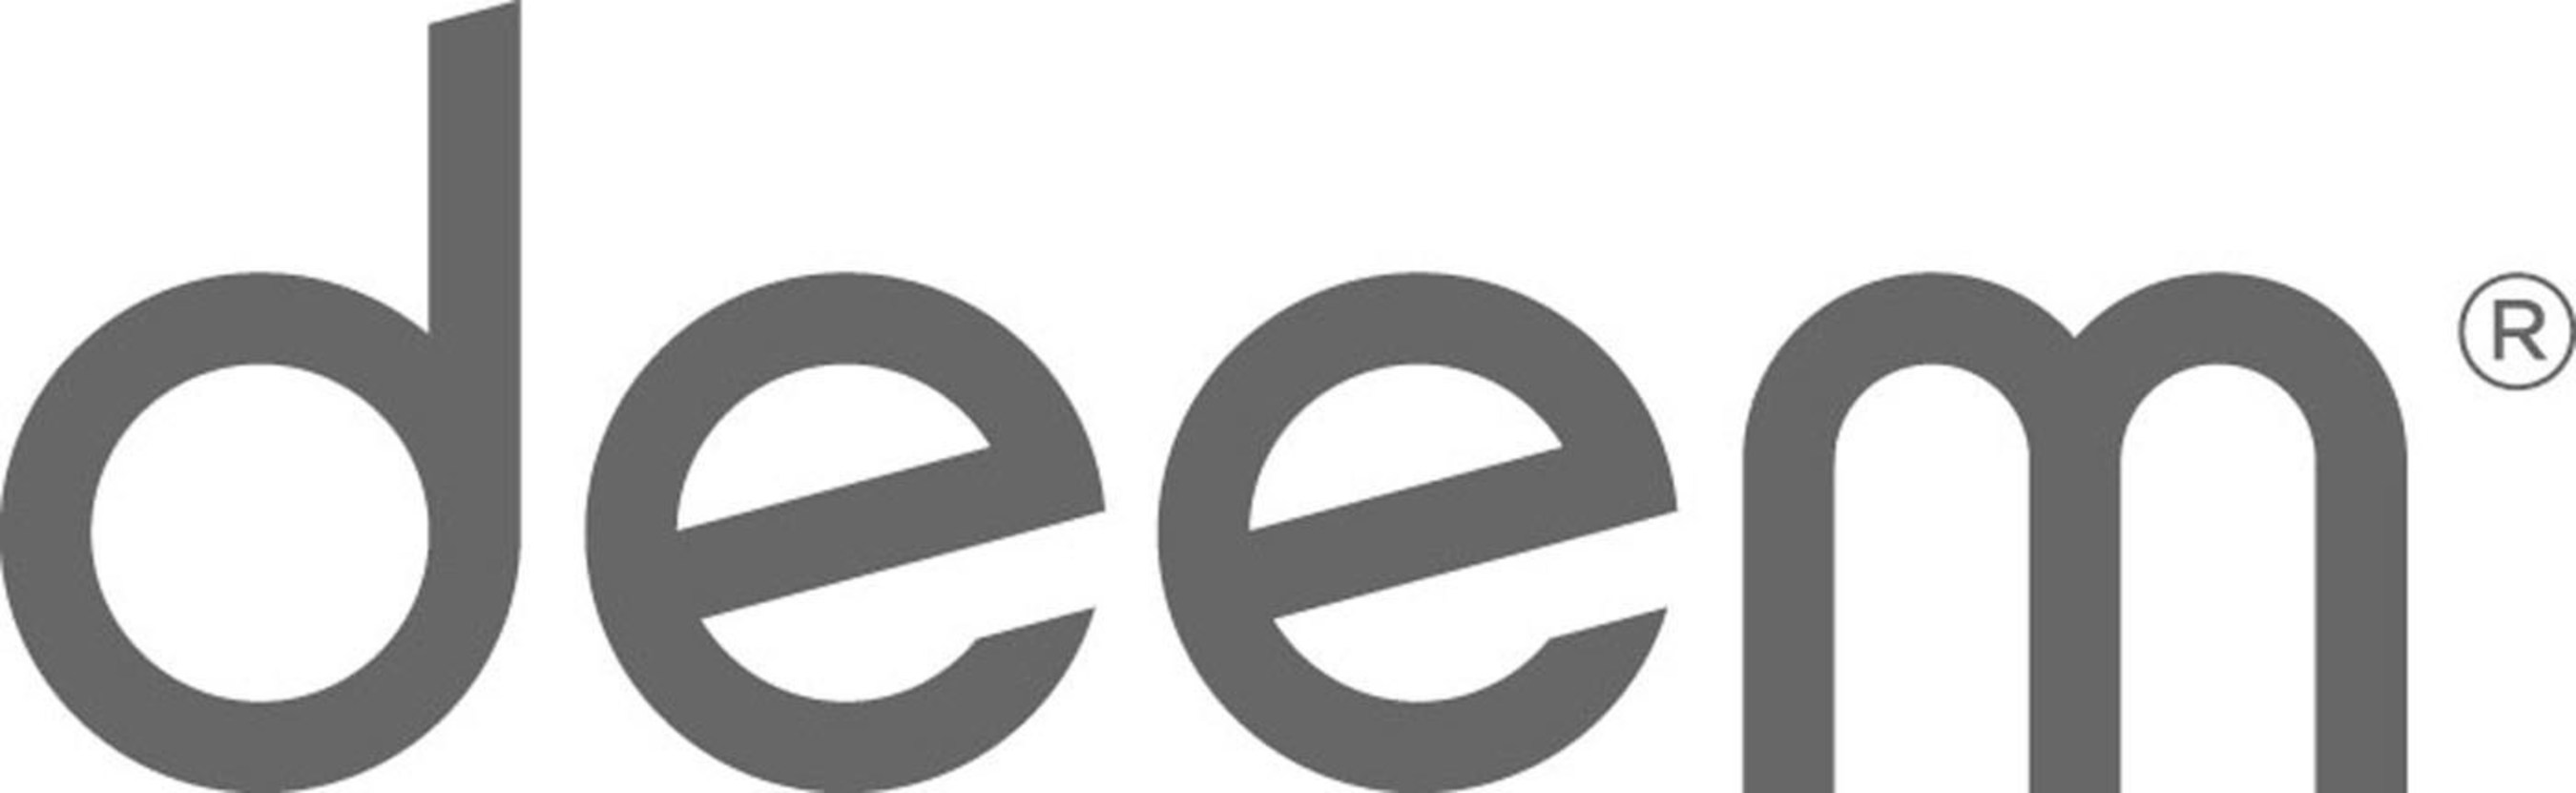 Deem Announces New Wave Of Major Operators Led By Carey International, Continued Growth Of Next-Generation Cloud And Mobile Network